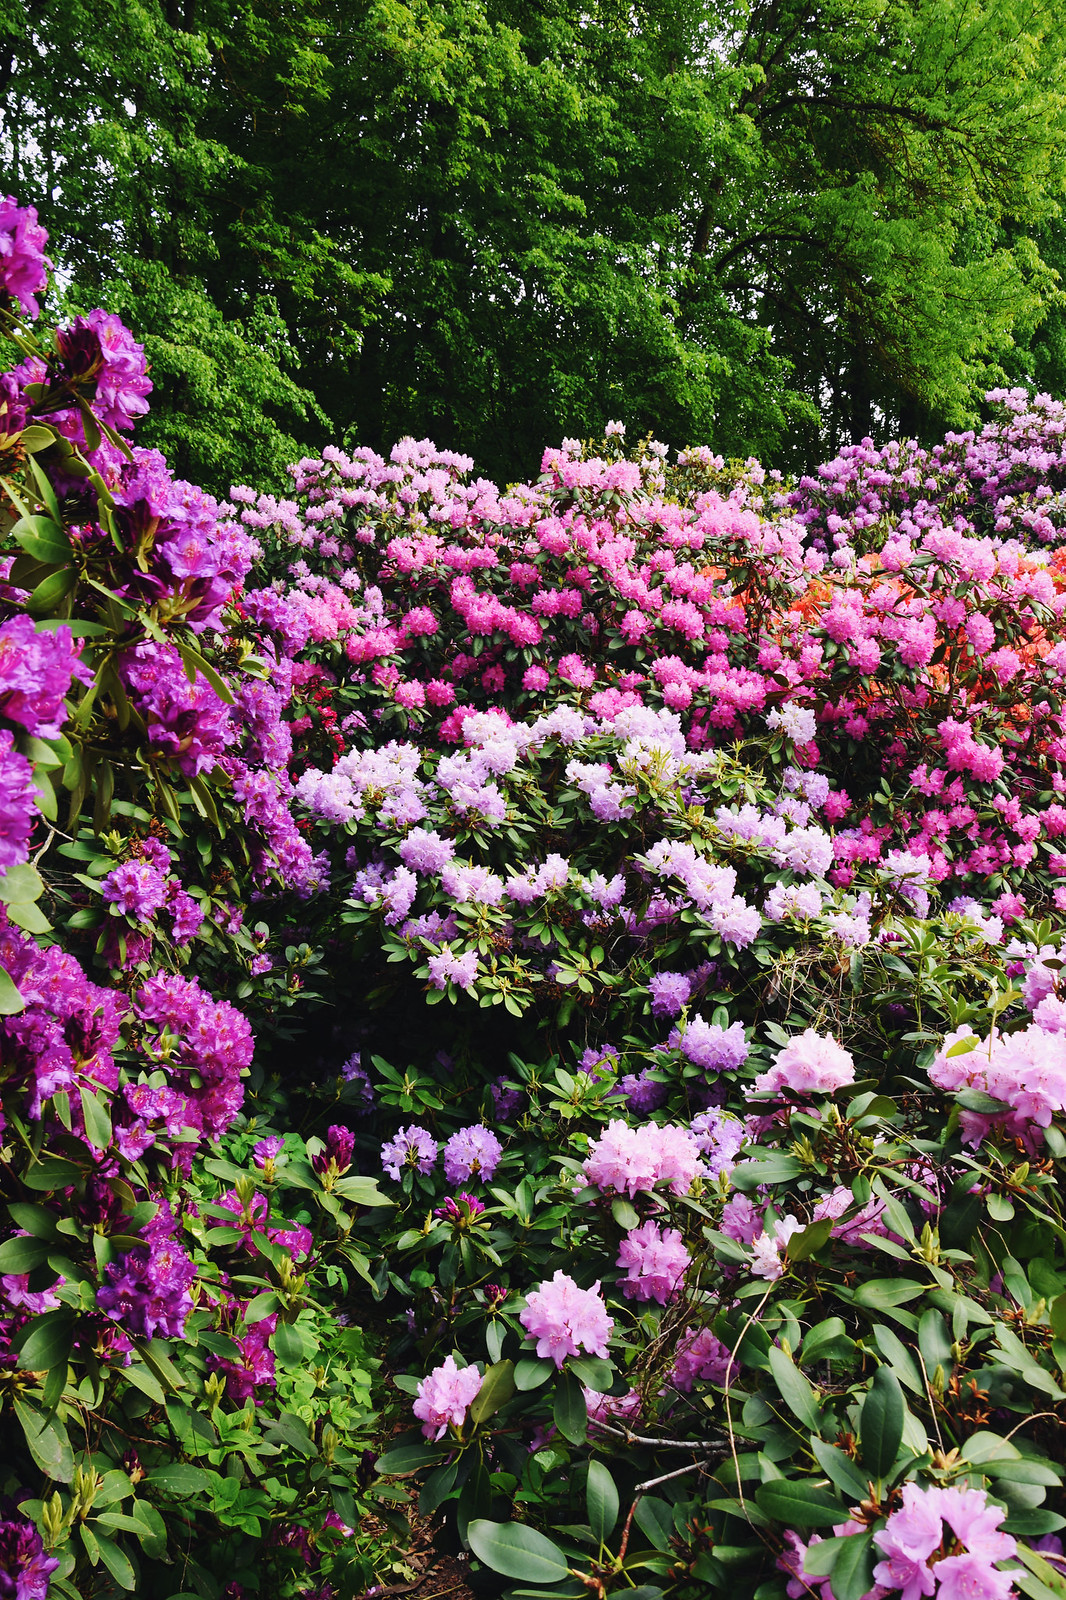 Blooming rhododendrons